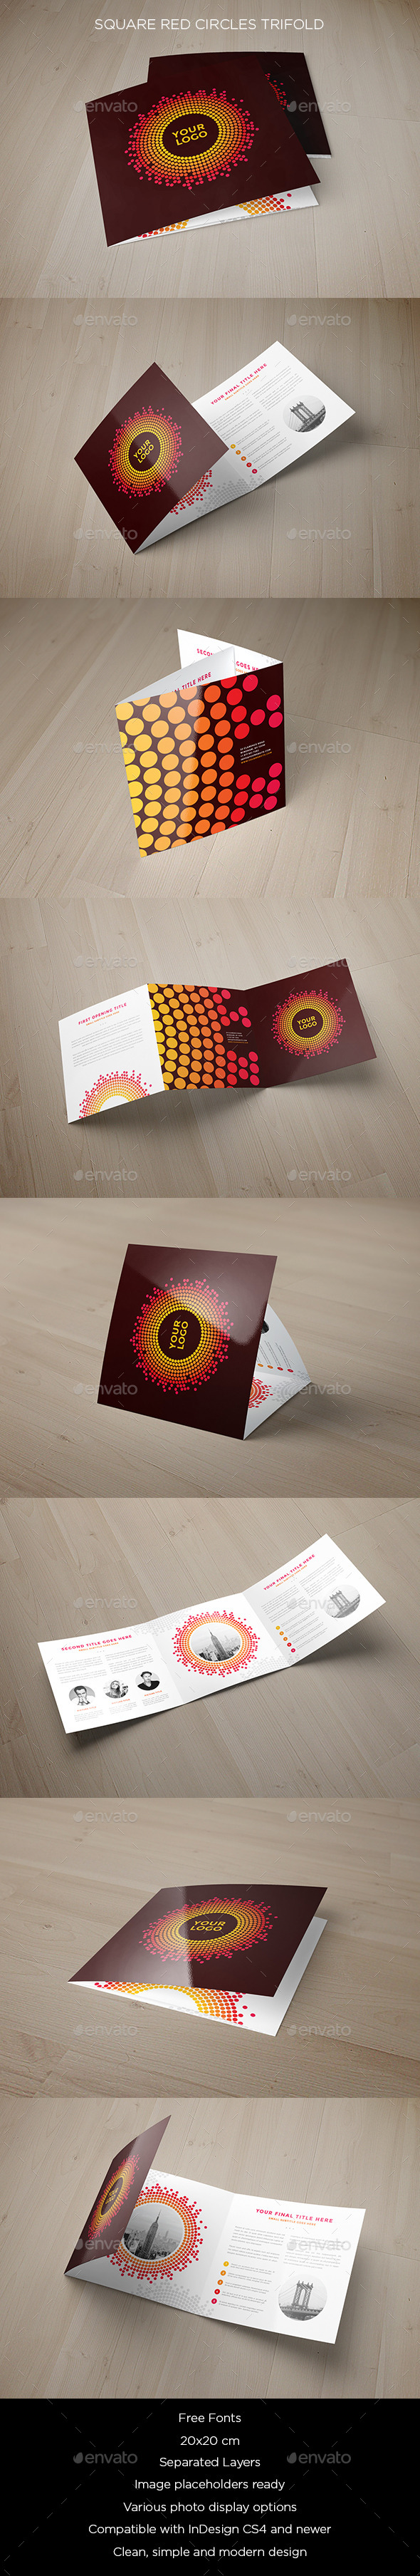 Square Red Circles Trifold - Brochures Print Templates